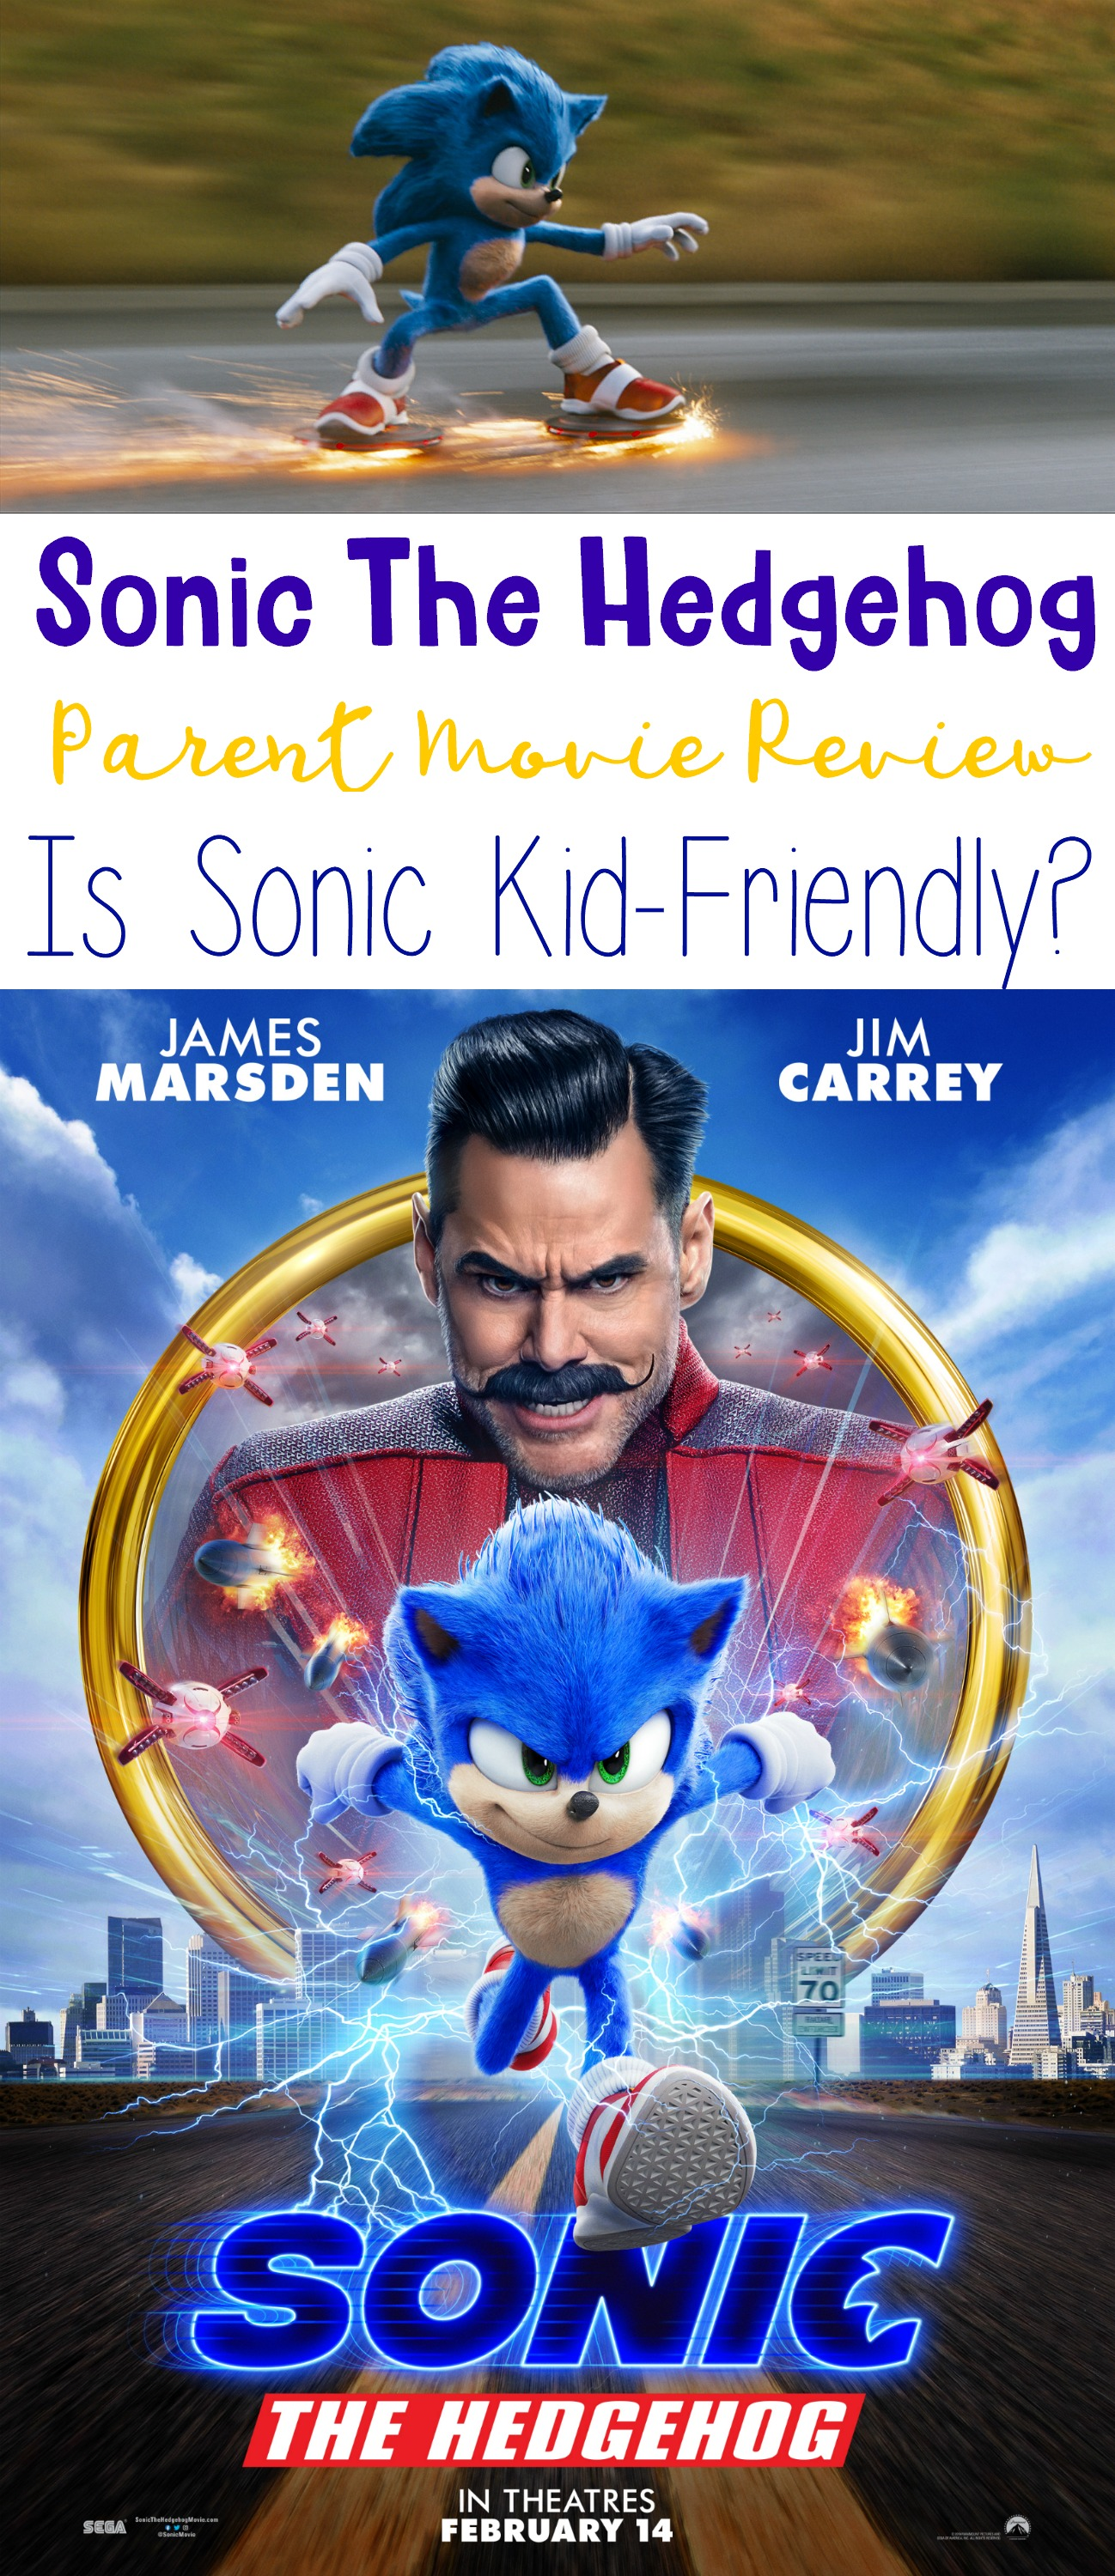 Sonic The Hedgehog Parent Movie Review, Is Sonic Kid-Friendly, #SonicMovie #CatchSonic